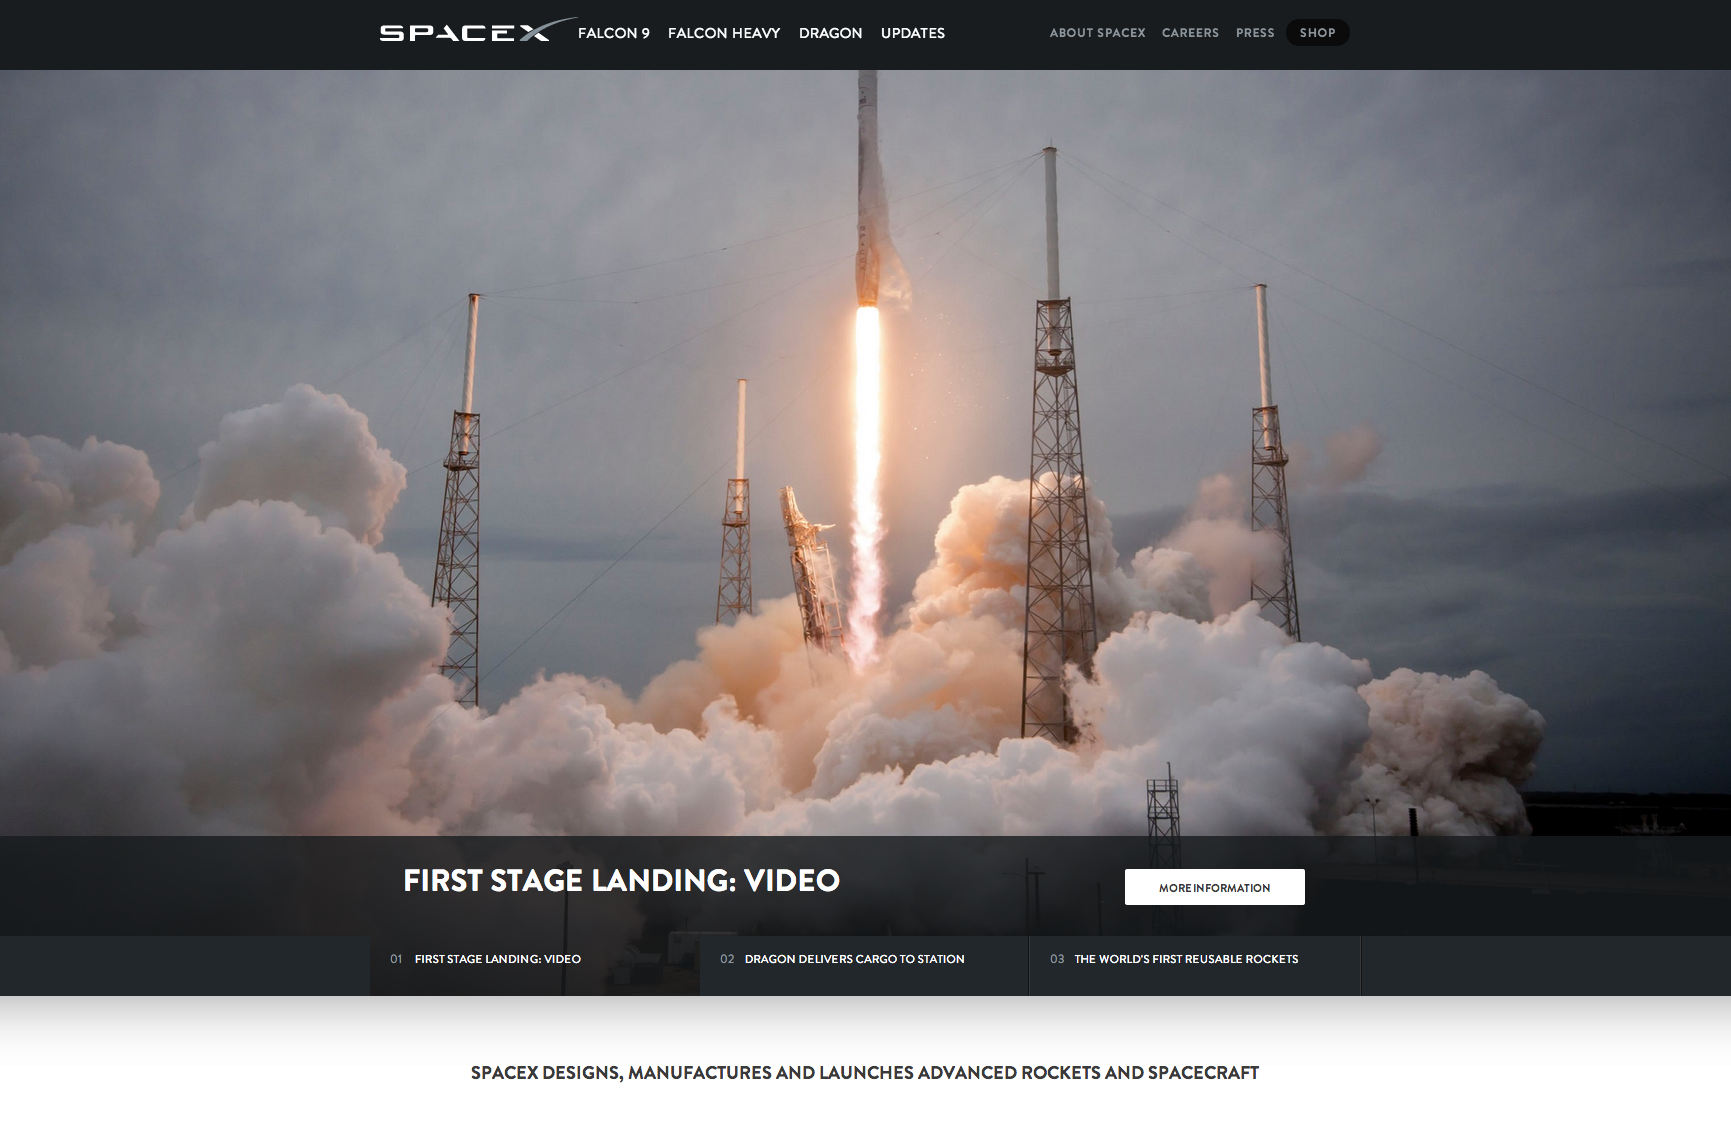 spacex first stage landing